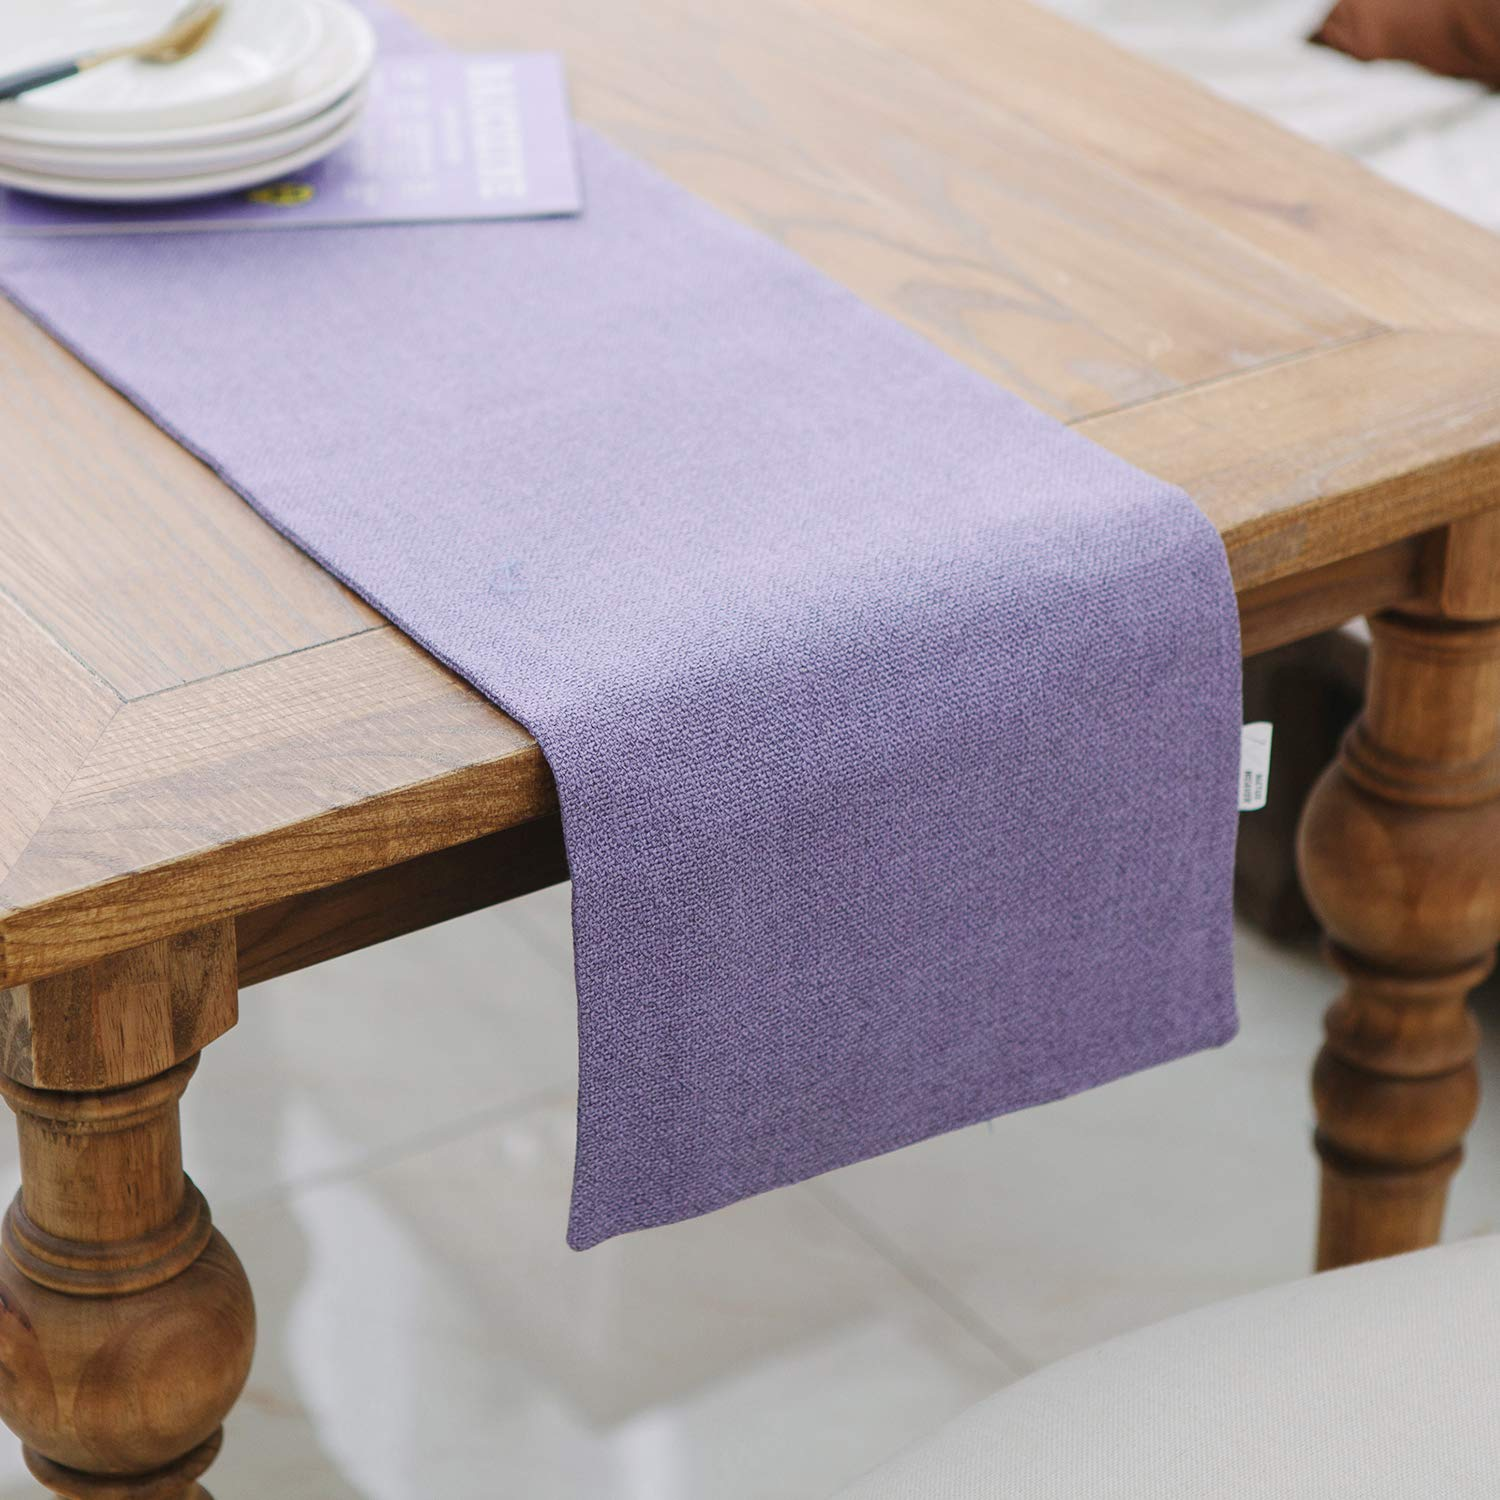 Admirable Natus Weaver Dining Table Runner 12 X 36 Inches Kitchen Room Dinner Wedding Birthday Party Burlap Rustic Table Runner Lilac Download Free Architecture Designs Intelgarnamadebymaigaardcom